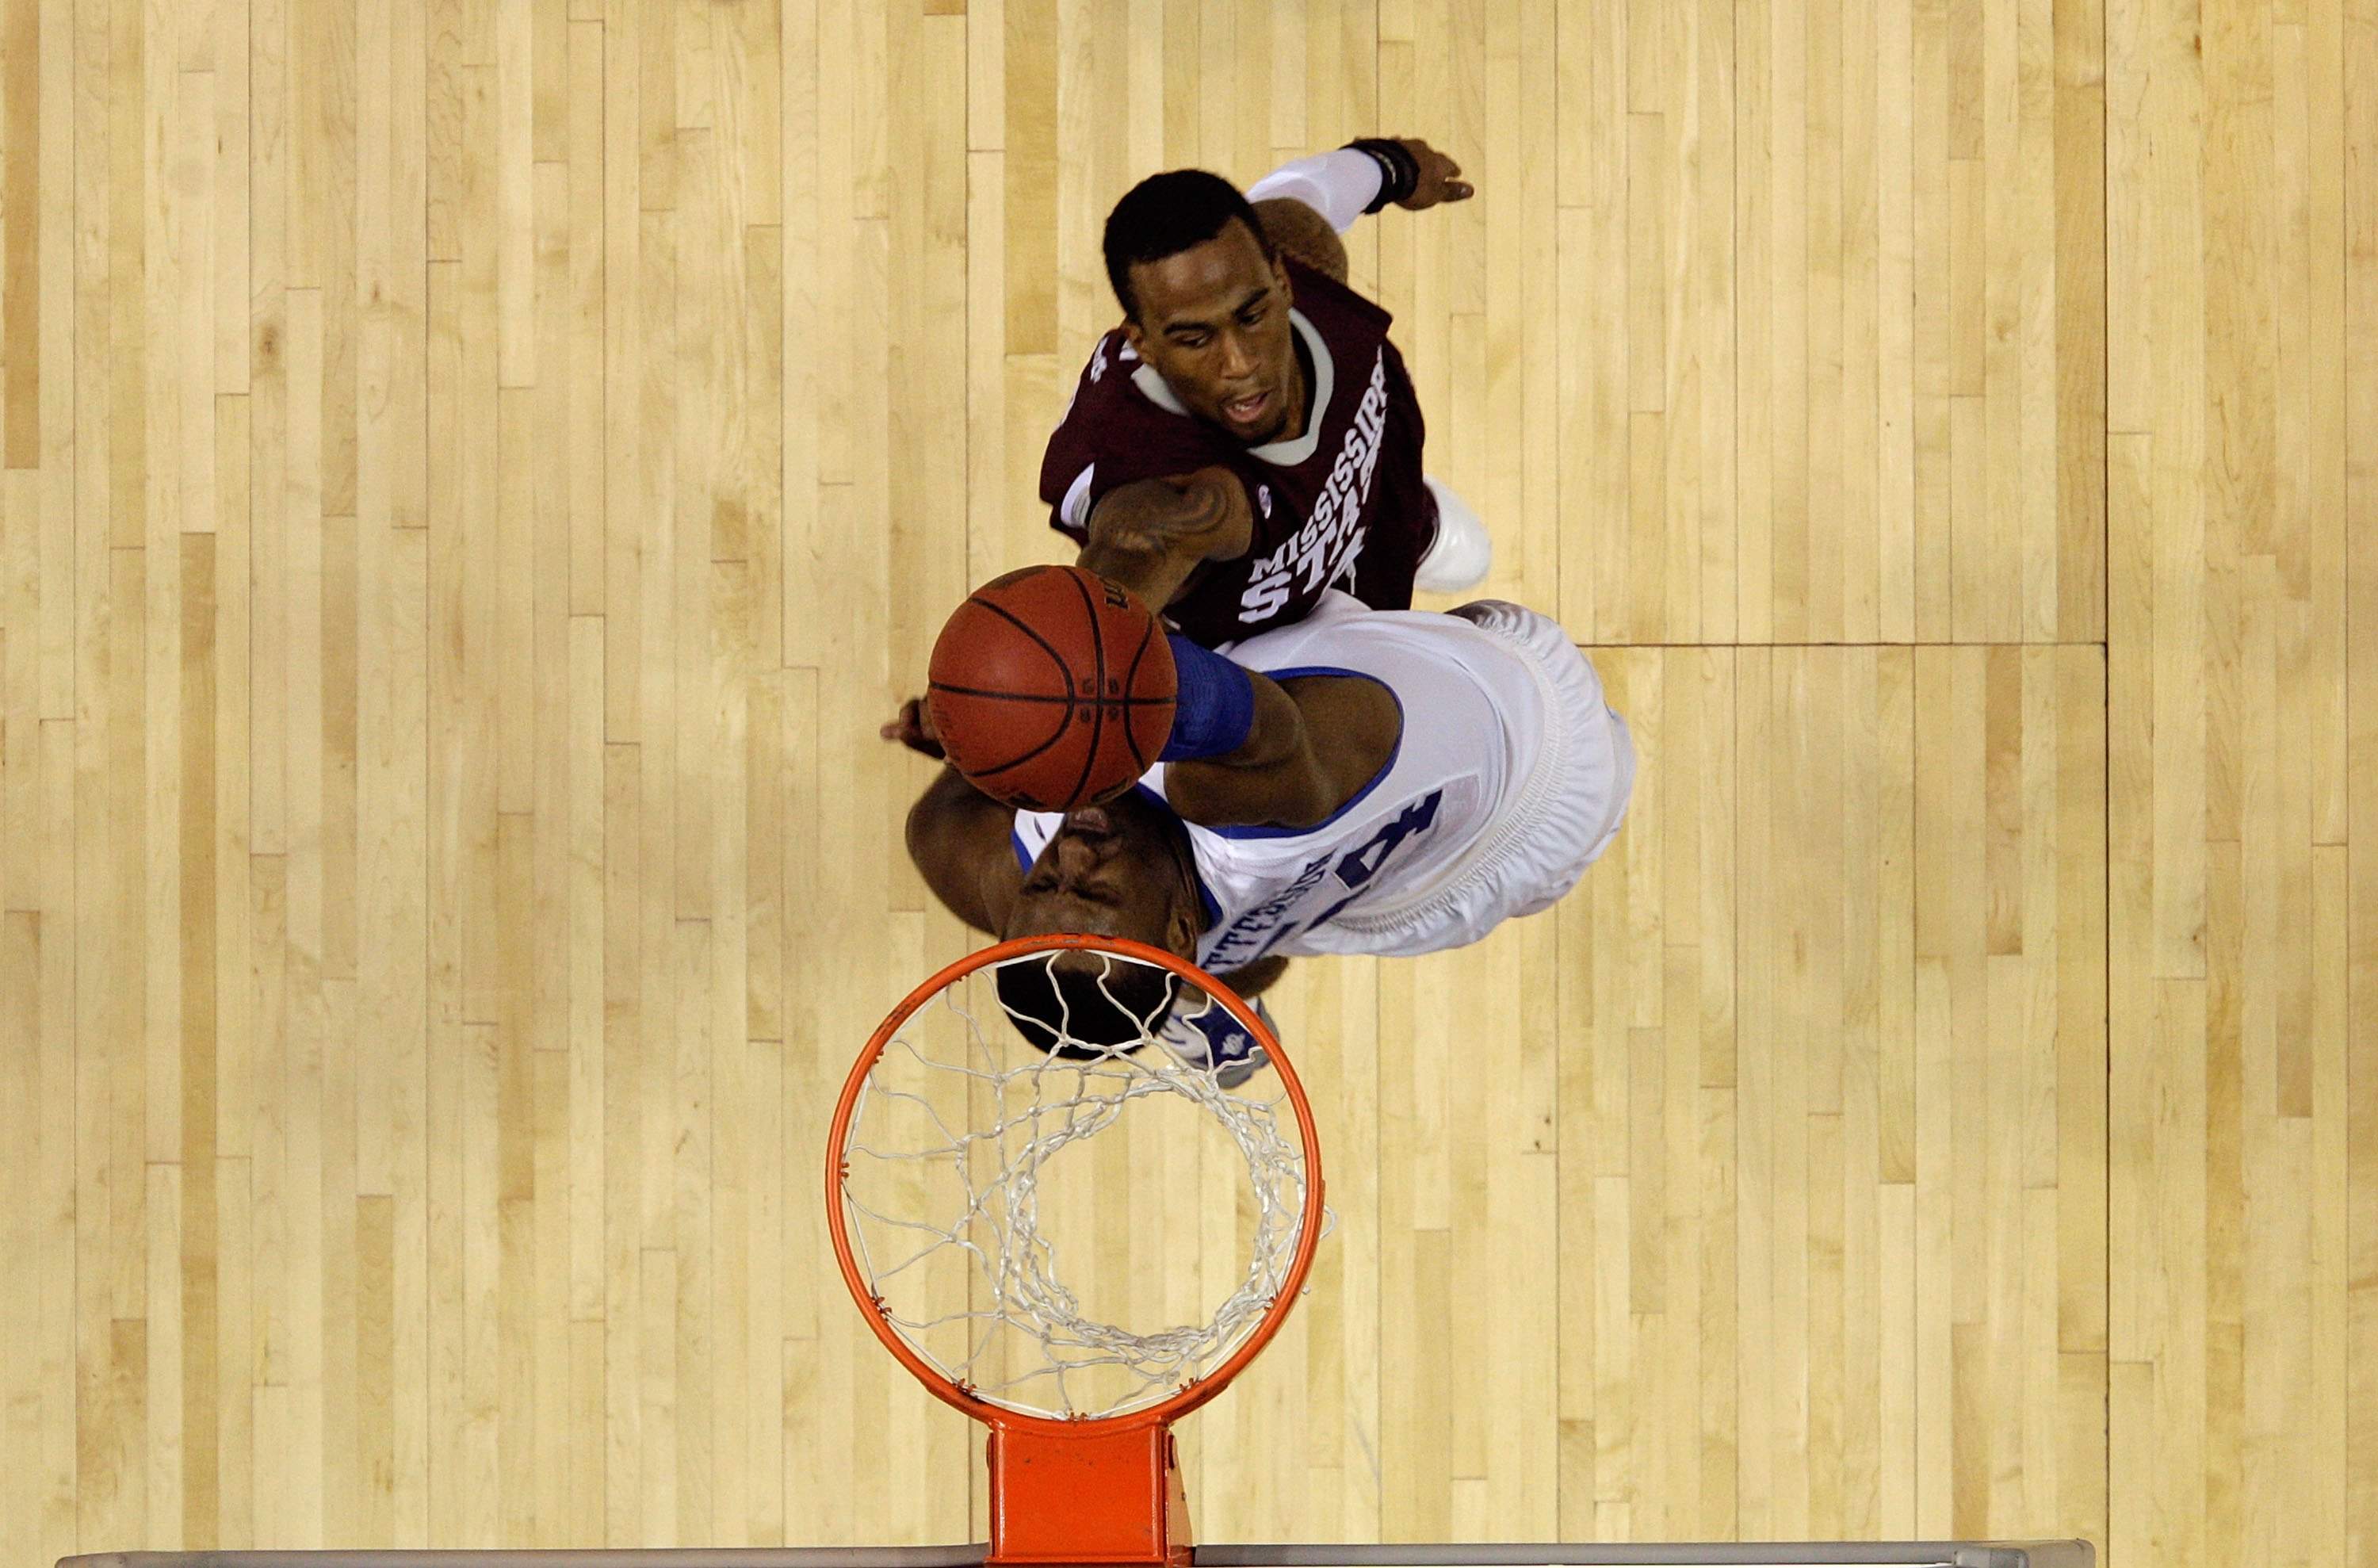 NASHVILLE, TN - MARCH 14:  Dee Bost #3 of the Mississippi State Bulldogs drives for a shot attempt against Patrick Patterson #54 of the Kentucky Wildcats during the final of the SEC Men's Basketball Tournament at the Bridgestone Arena on March 14, 2010 in